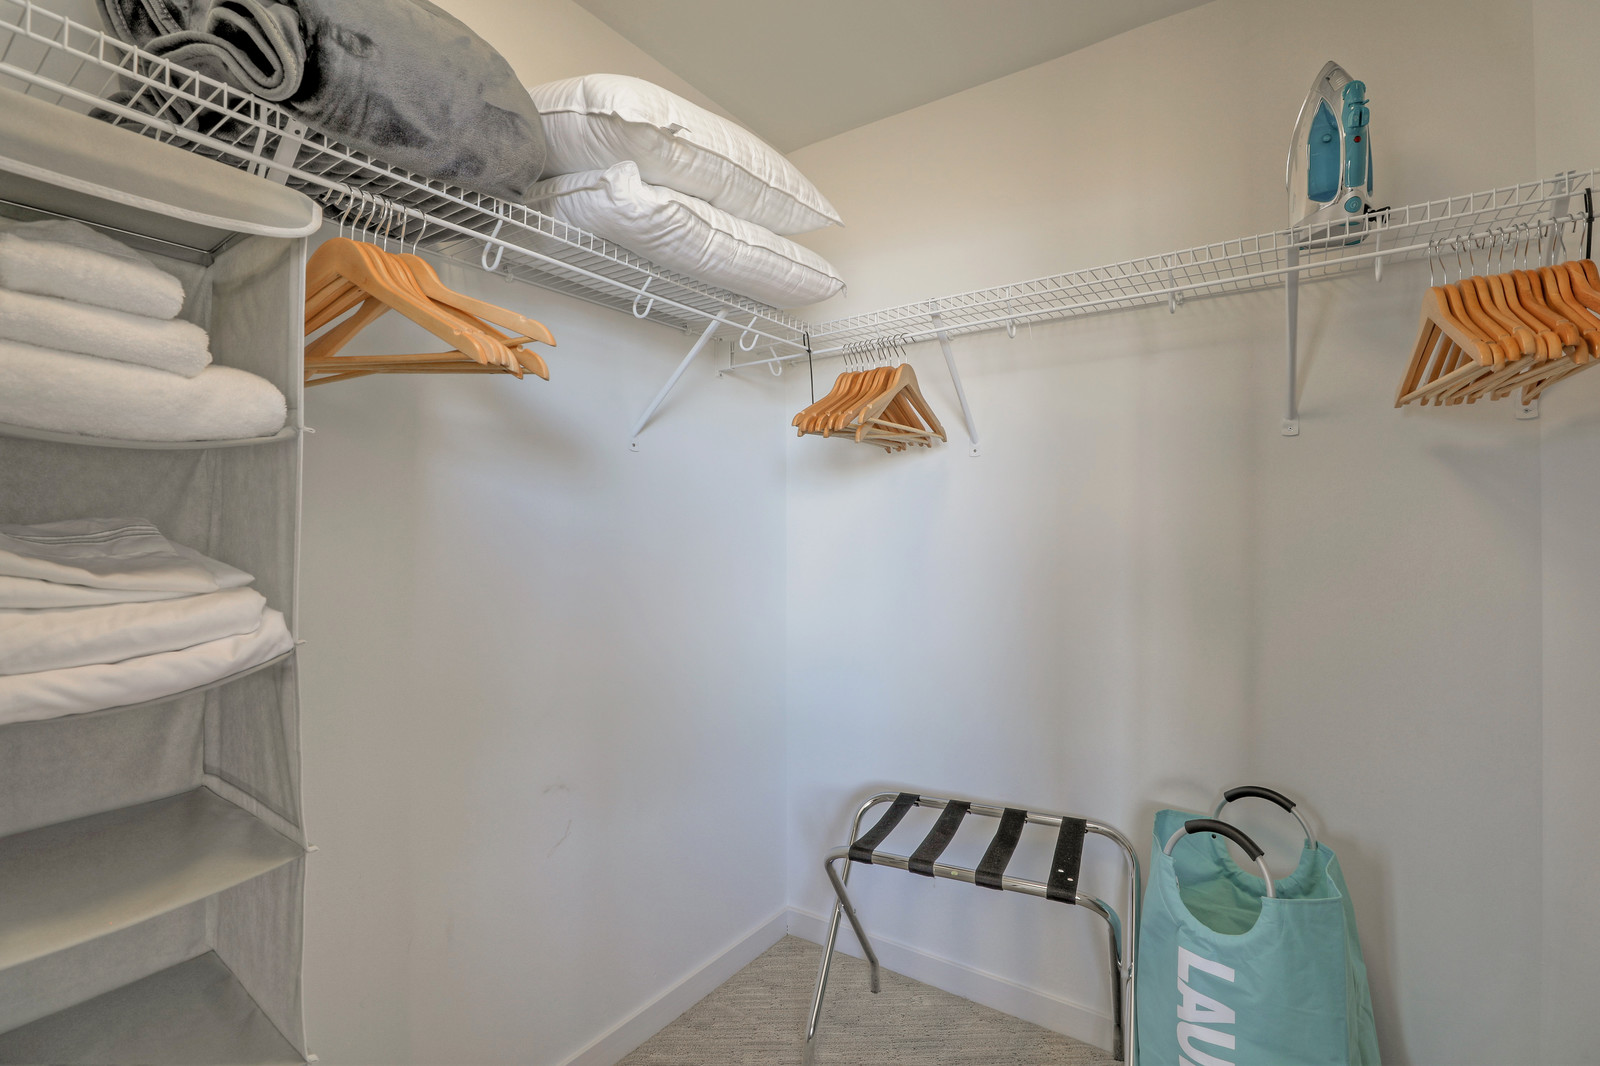 Closet at Aire Serviced Apartments